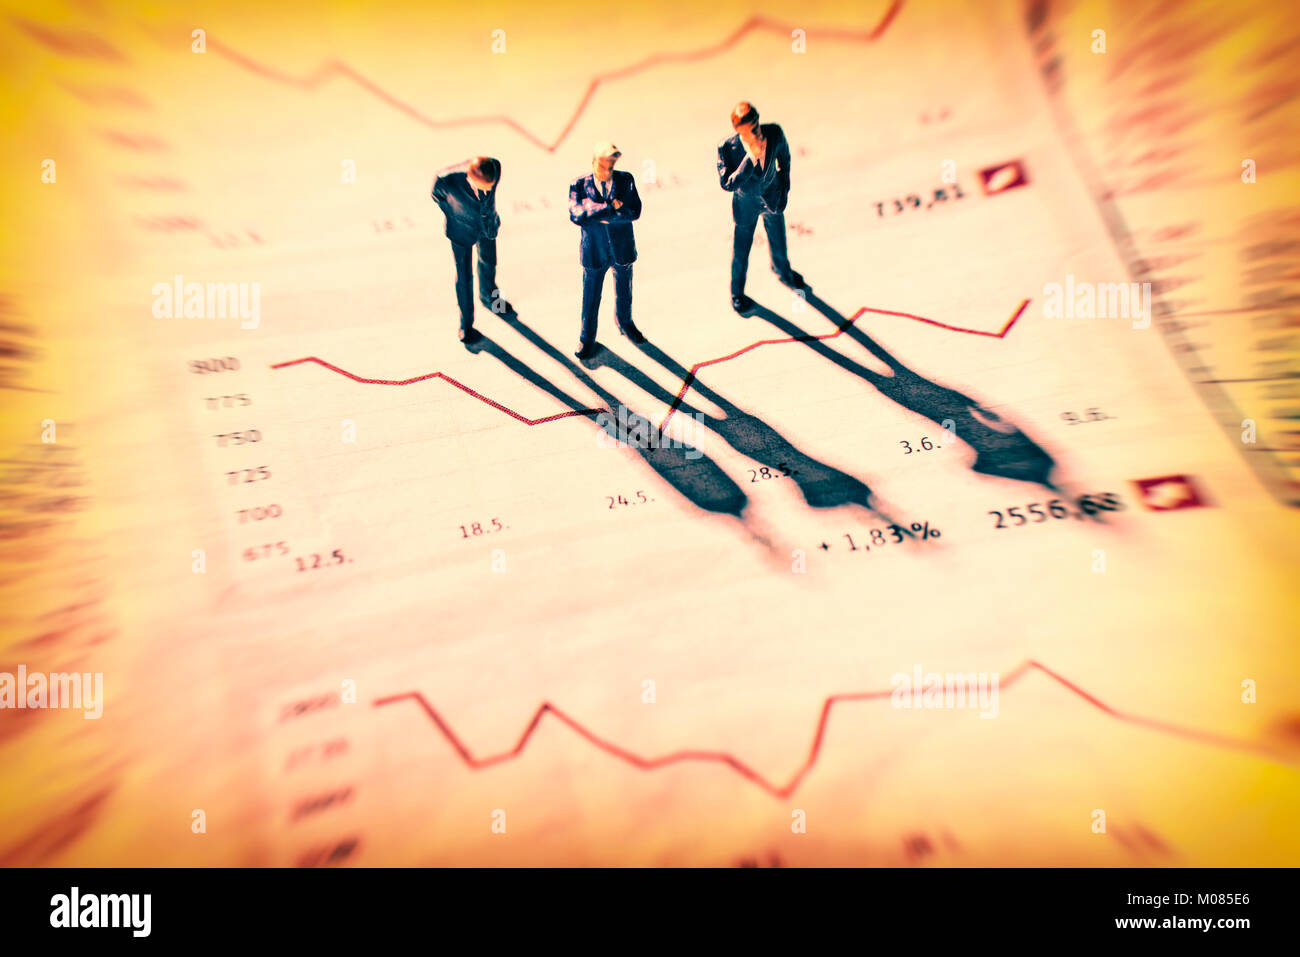 Businessmen are skeptical looking at stock market charts. - Stock Image